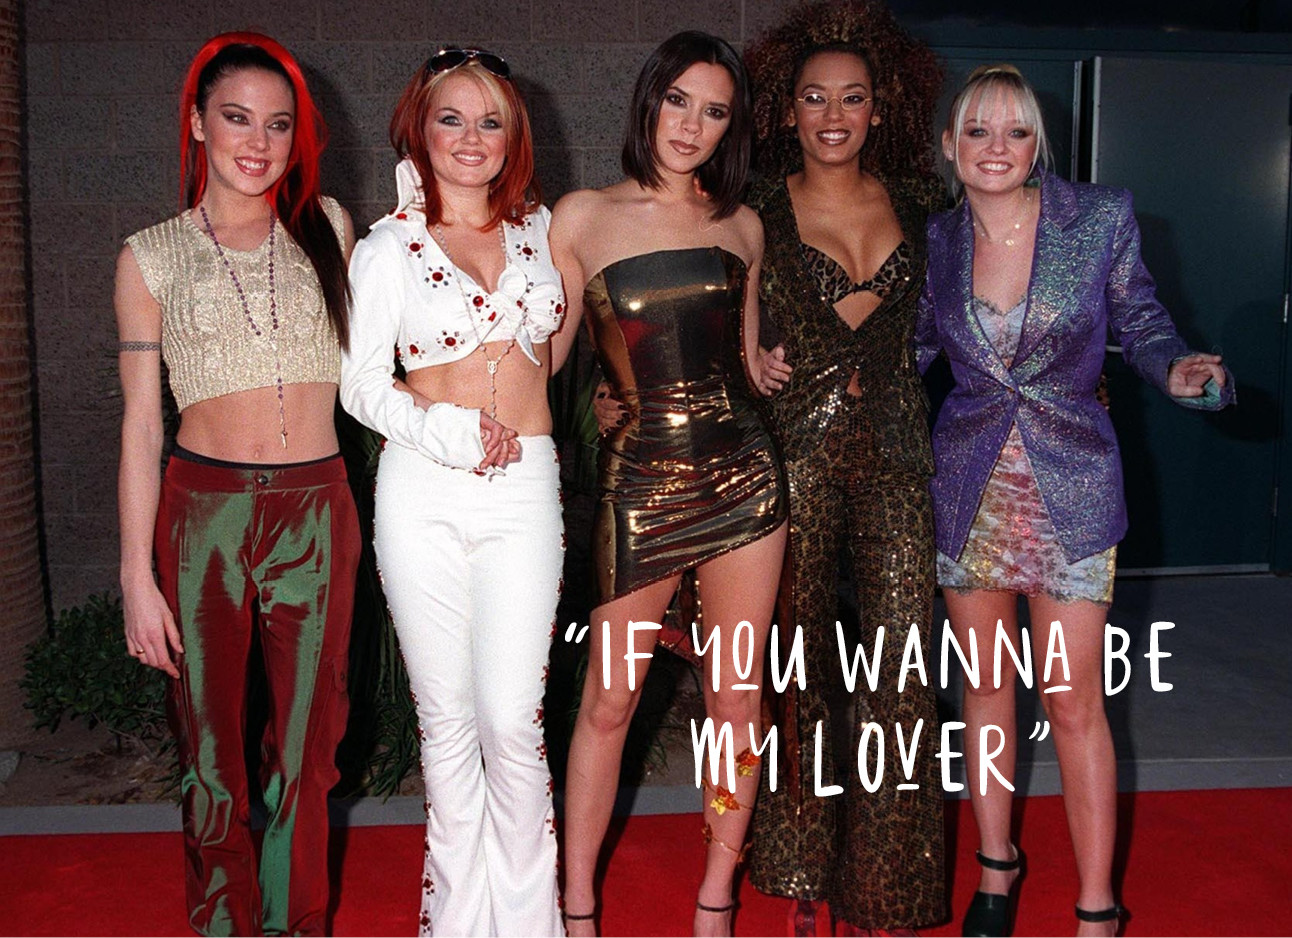 girlband the spice girls, mel b, mel c, victoria beckham, geri halliwel en emma bunton, op de rode loper if you wanna be my lover